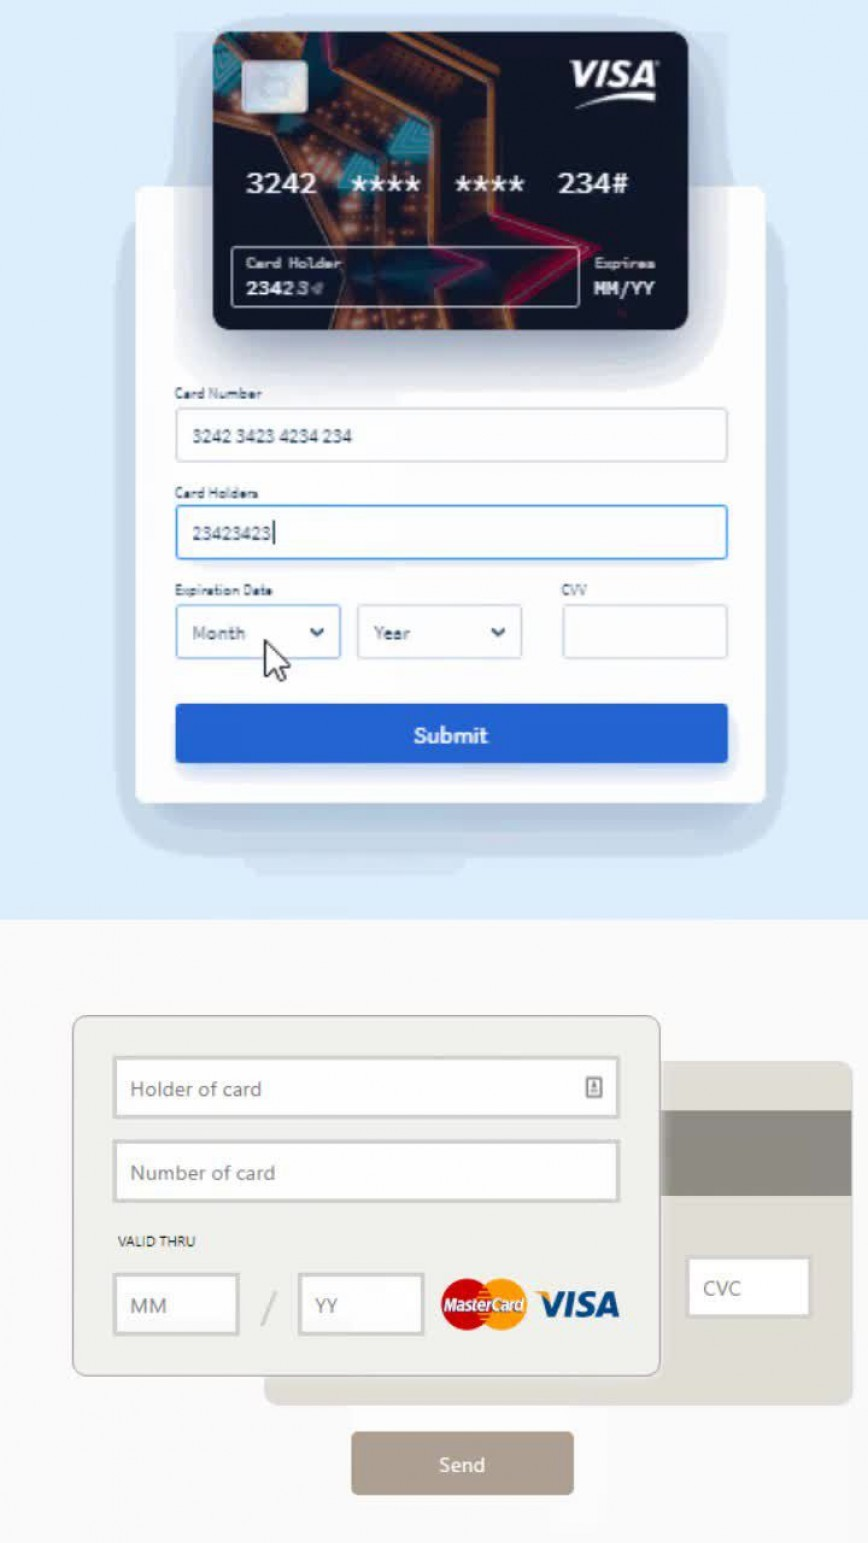 008 Awful Credit Card Form Template Html Example  Payment Cs868